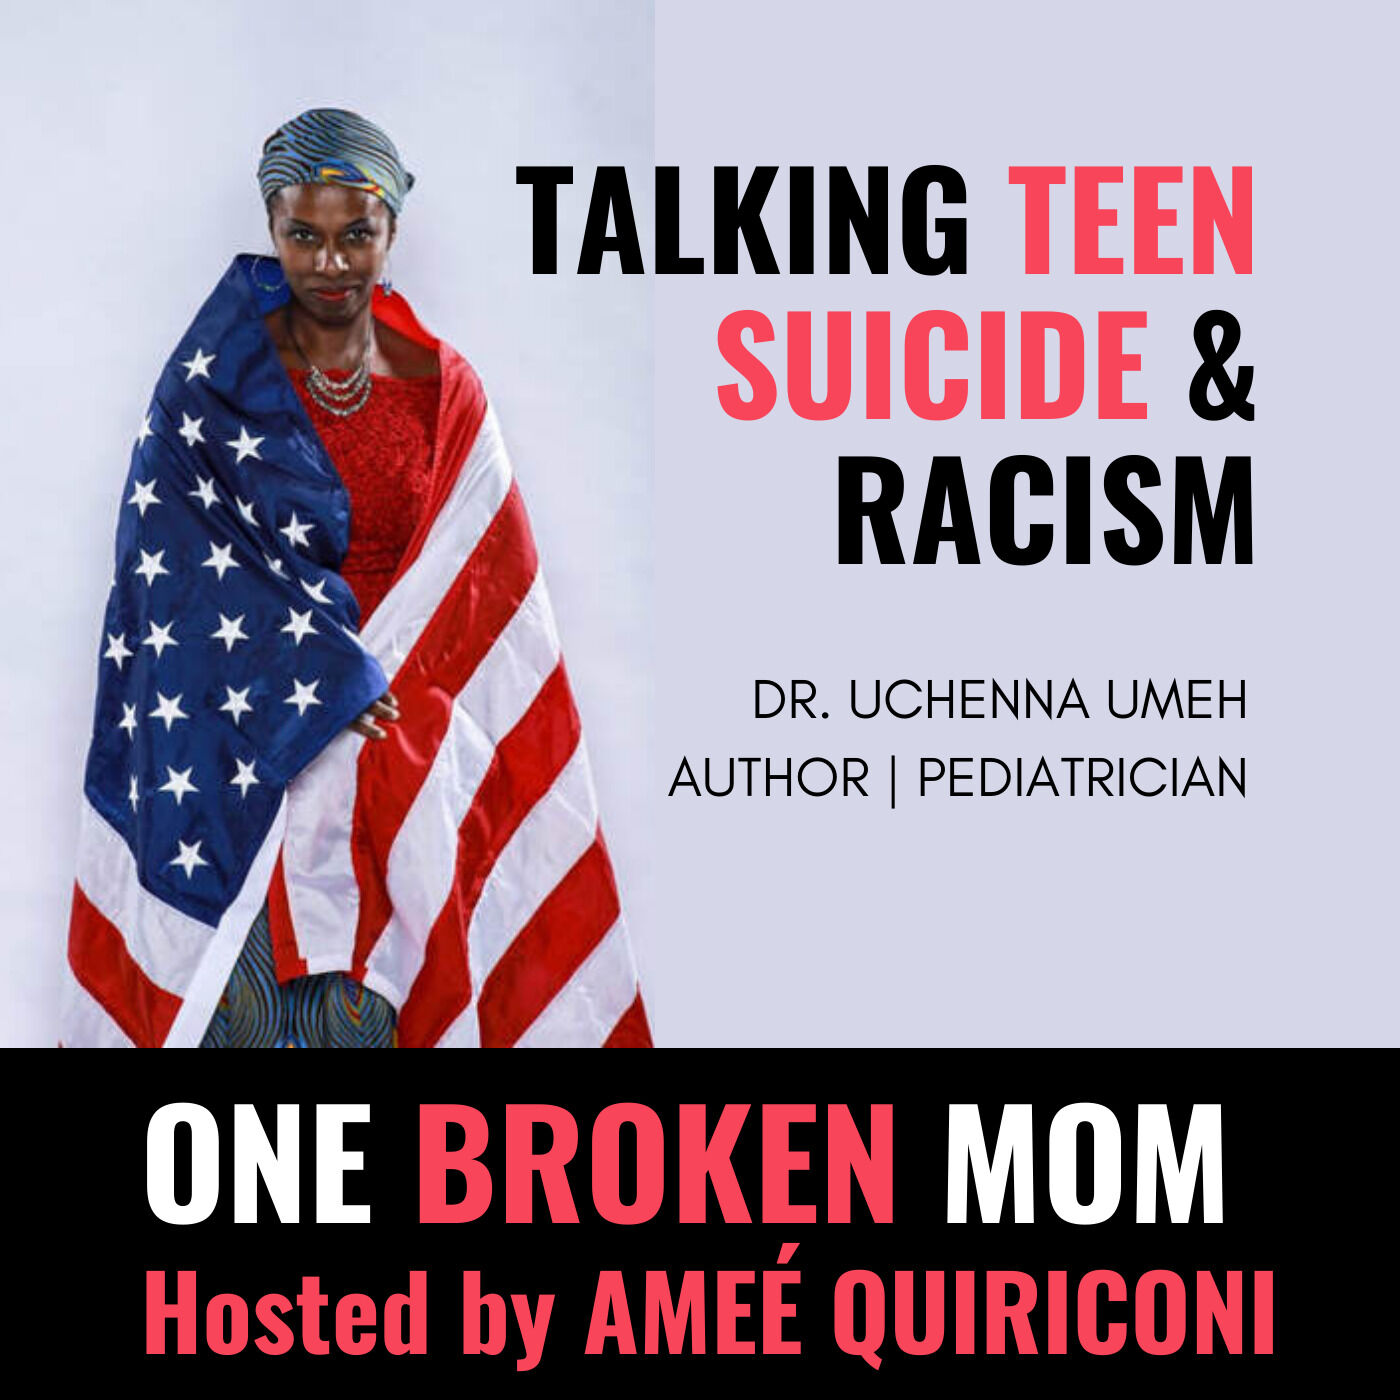 Talking Teen Suicide & Racism with Dr. Uchenna Umeh